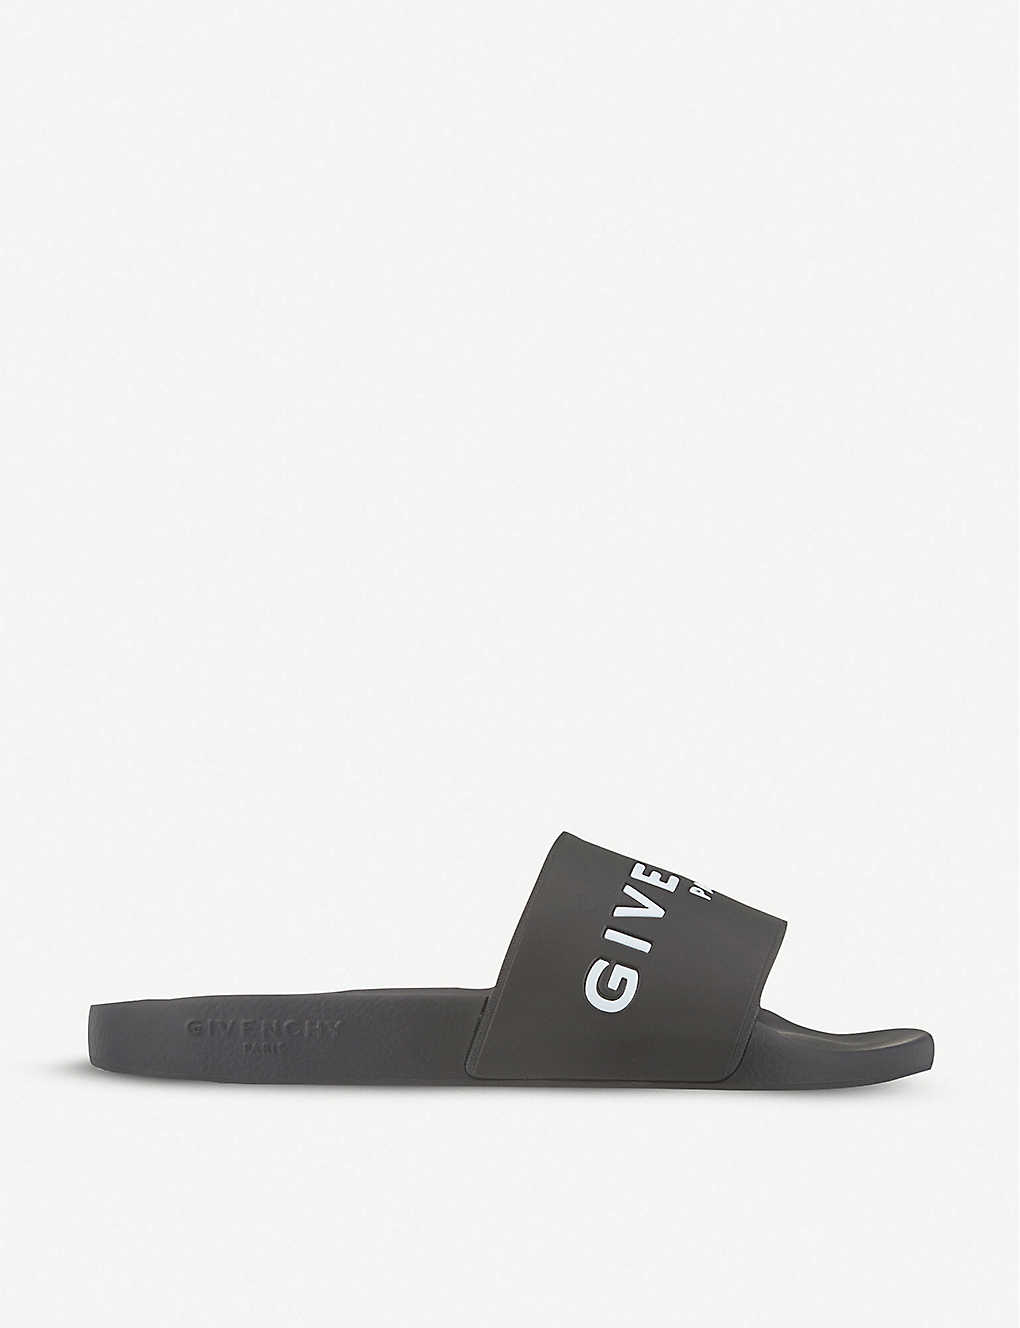 982a3d9fc54 GIVENCHY - Logo sliders